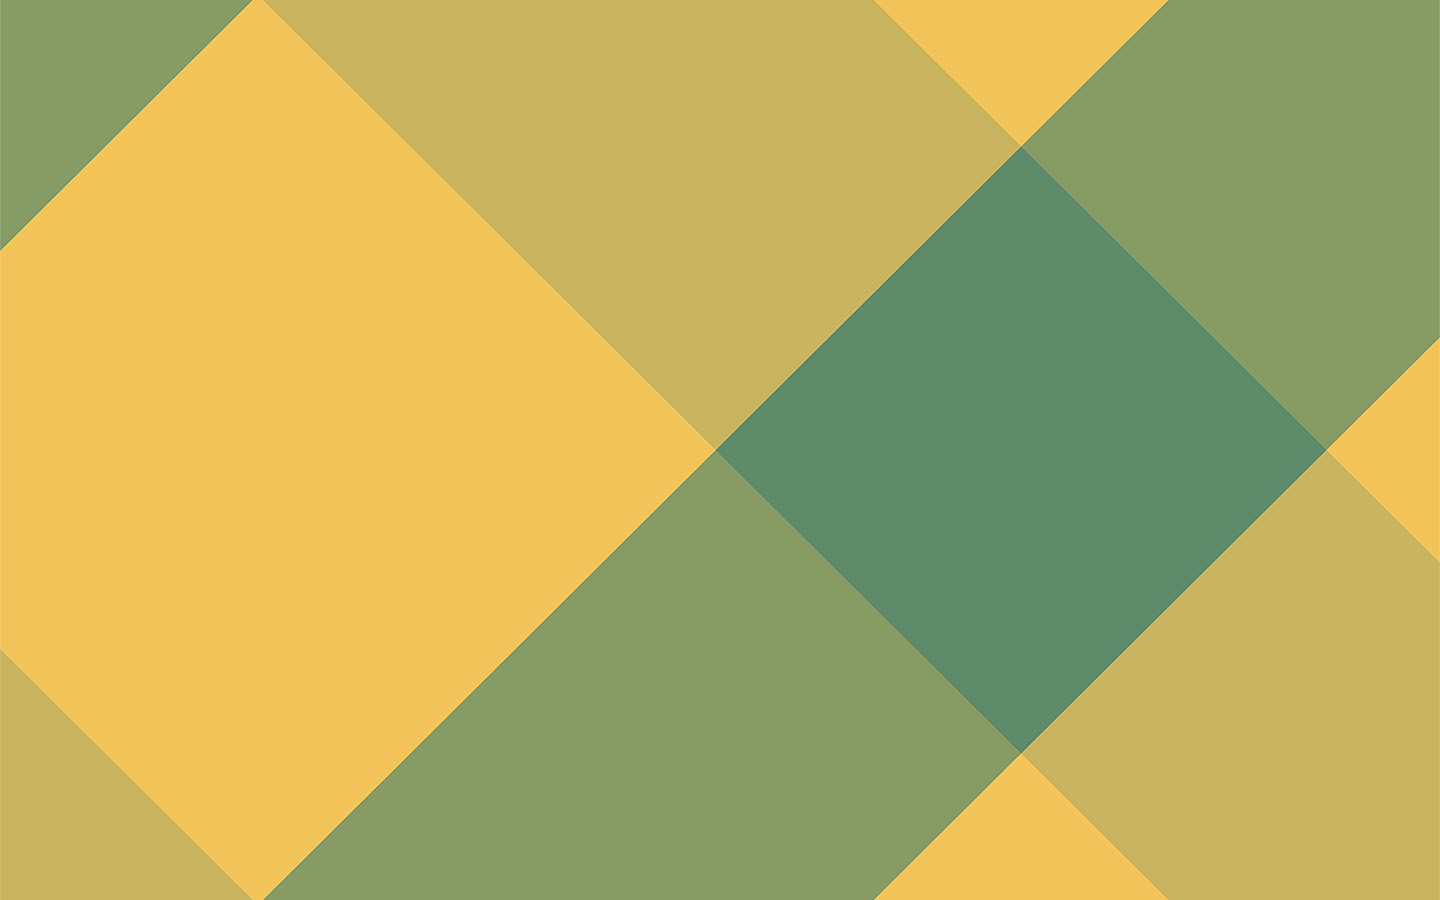 Hd Car Wallpapers For Nexus 5 Vl70 Lines Green Yellow Rectangle Abstract Pattern Papers Co